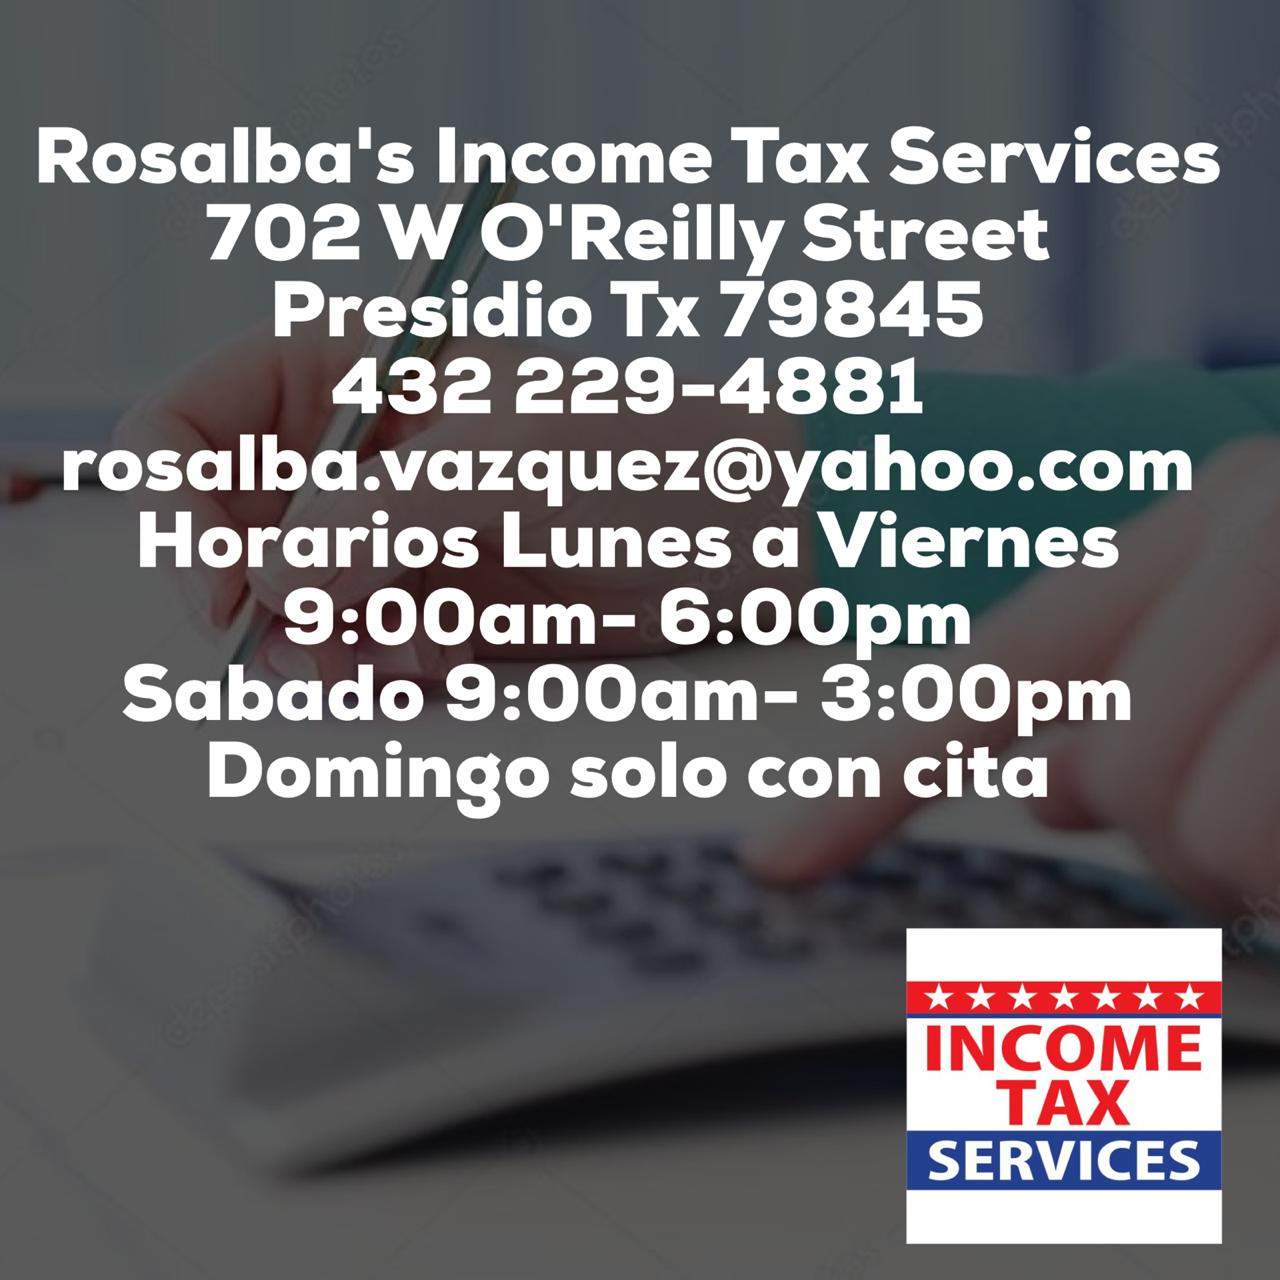 Rosalba's Income Tax Services